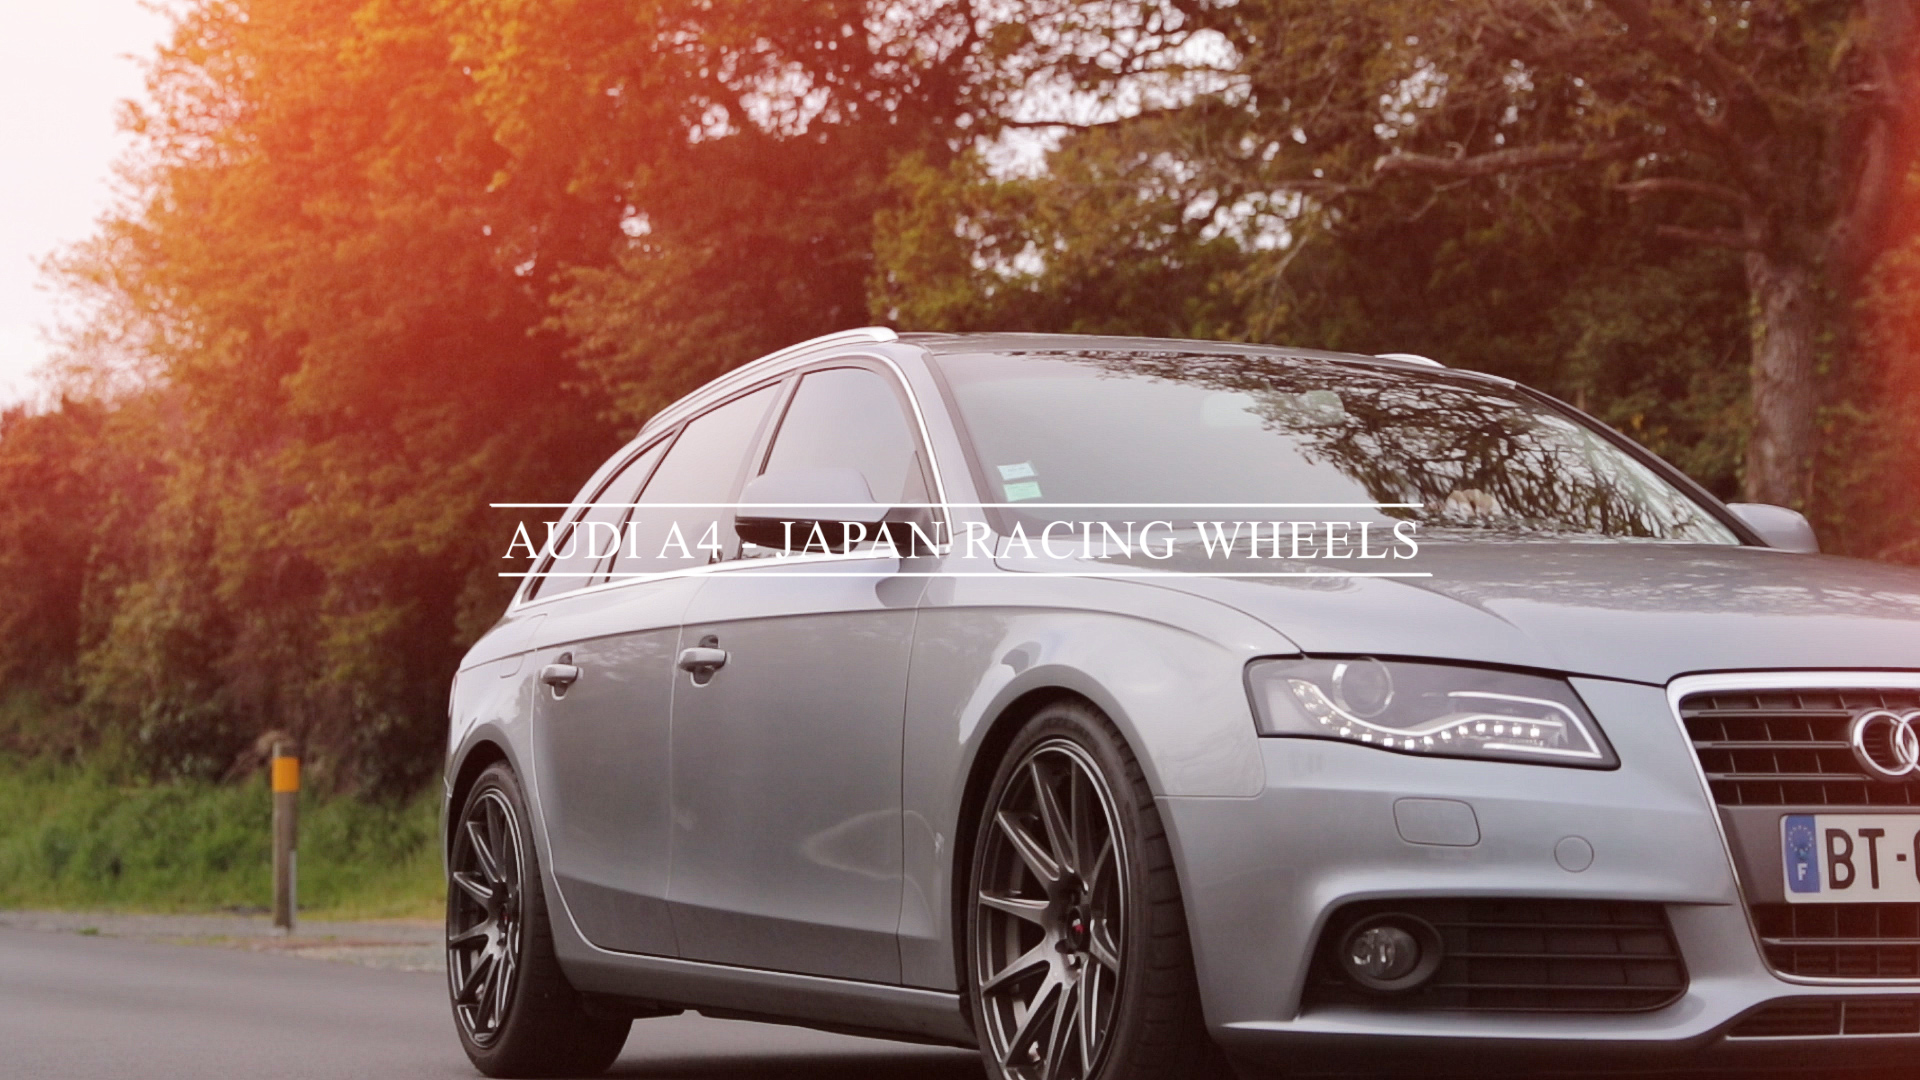 Audi A4 - Japan Racing Wheels